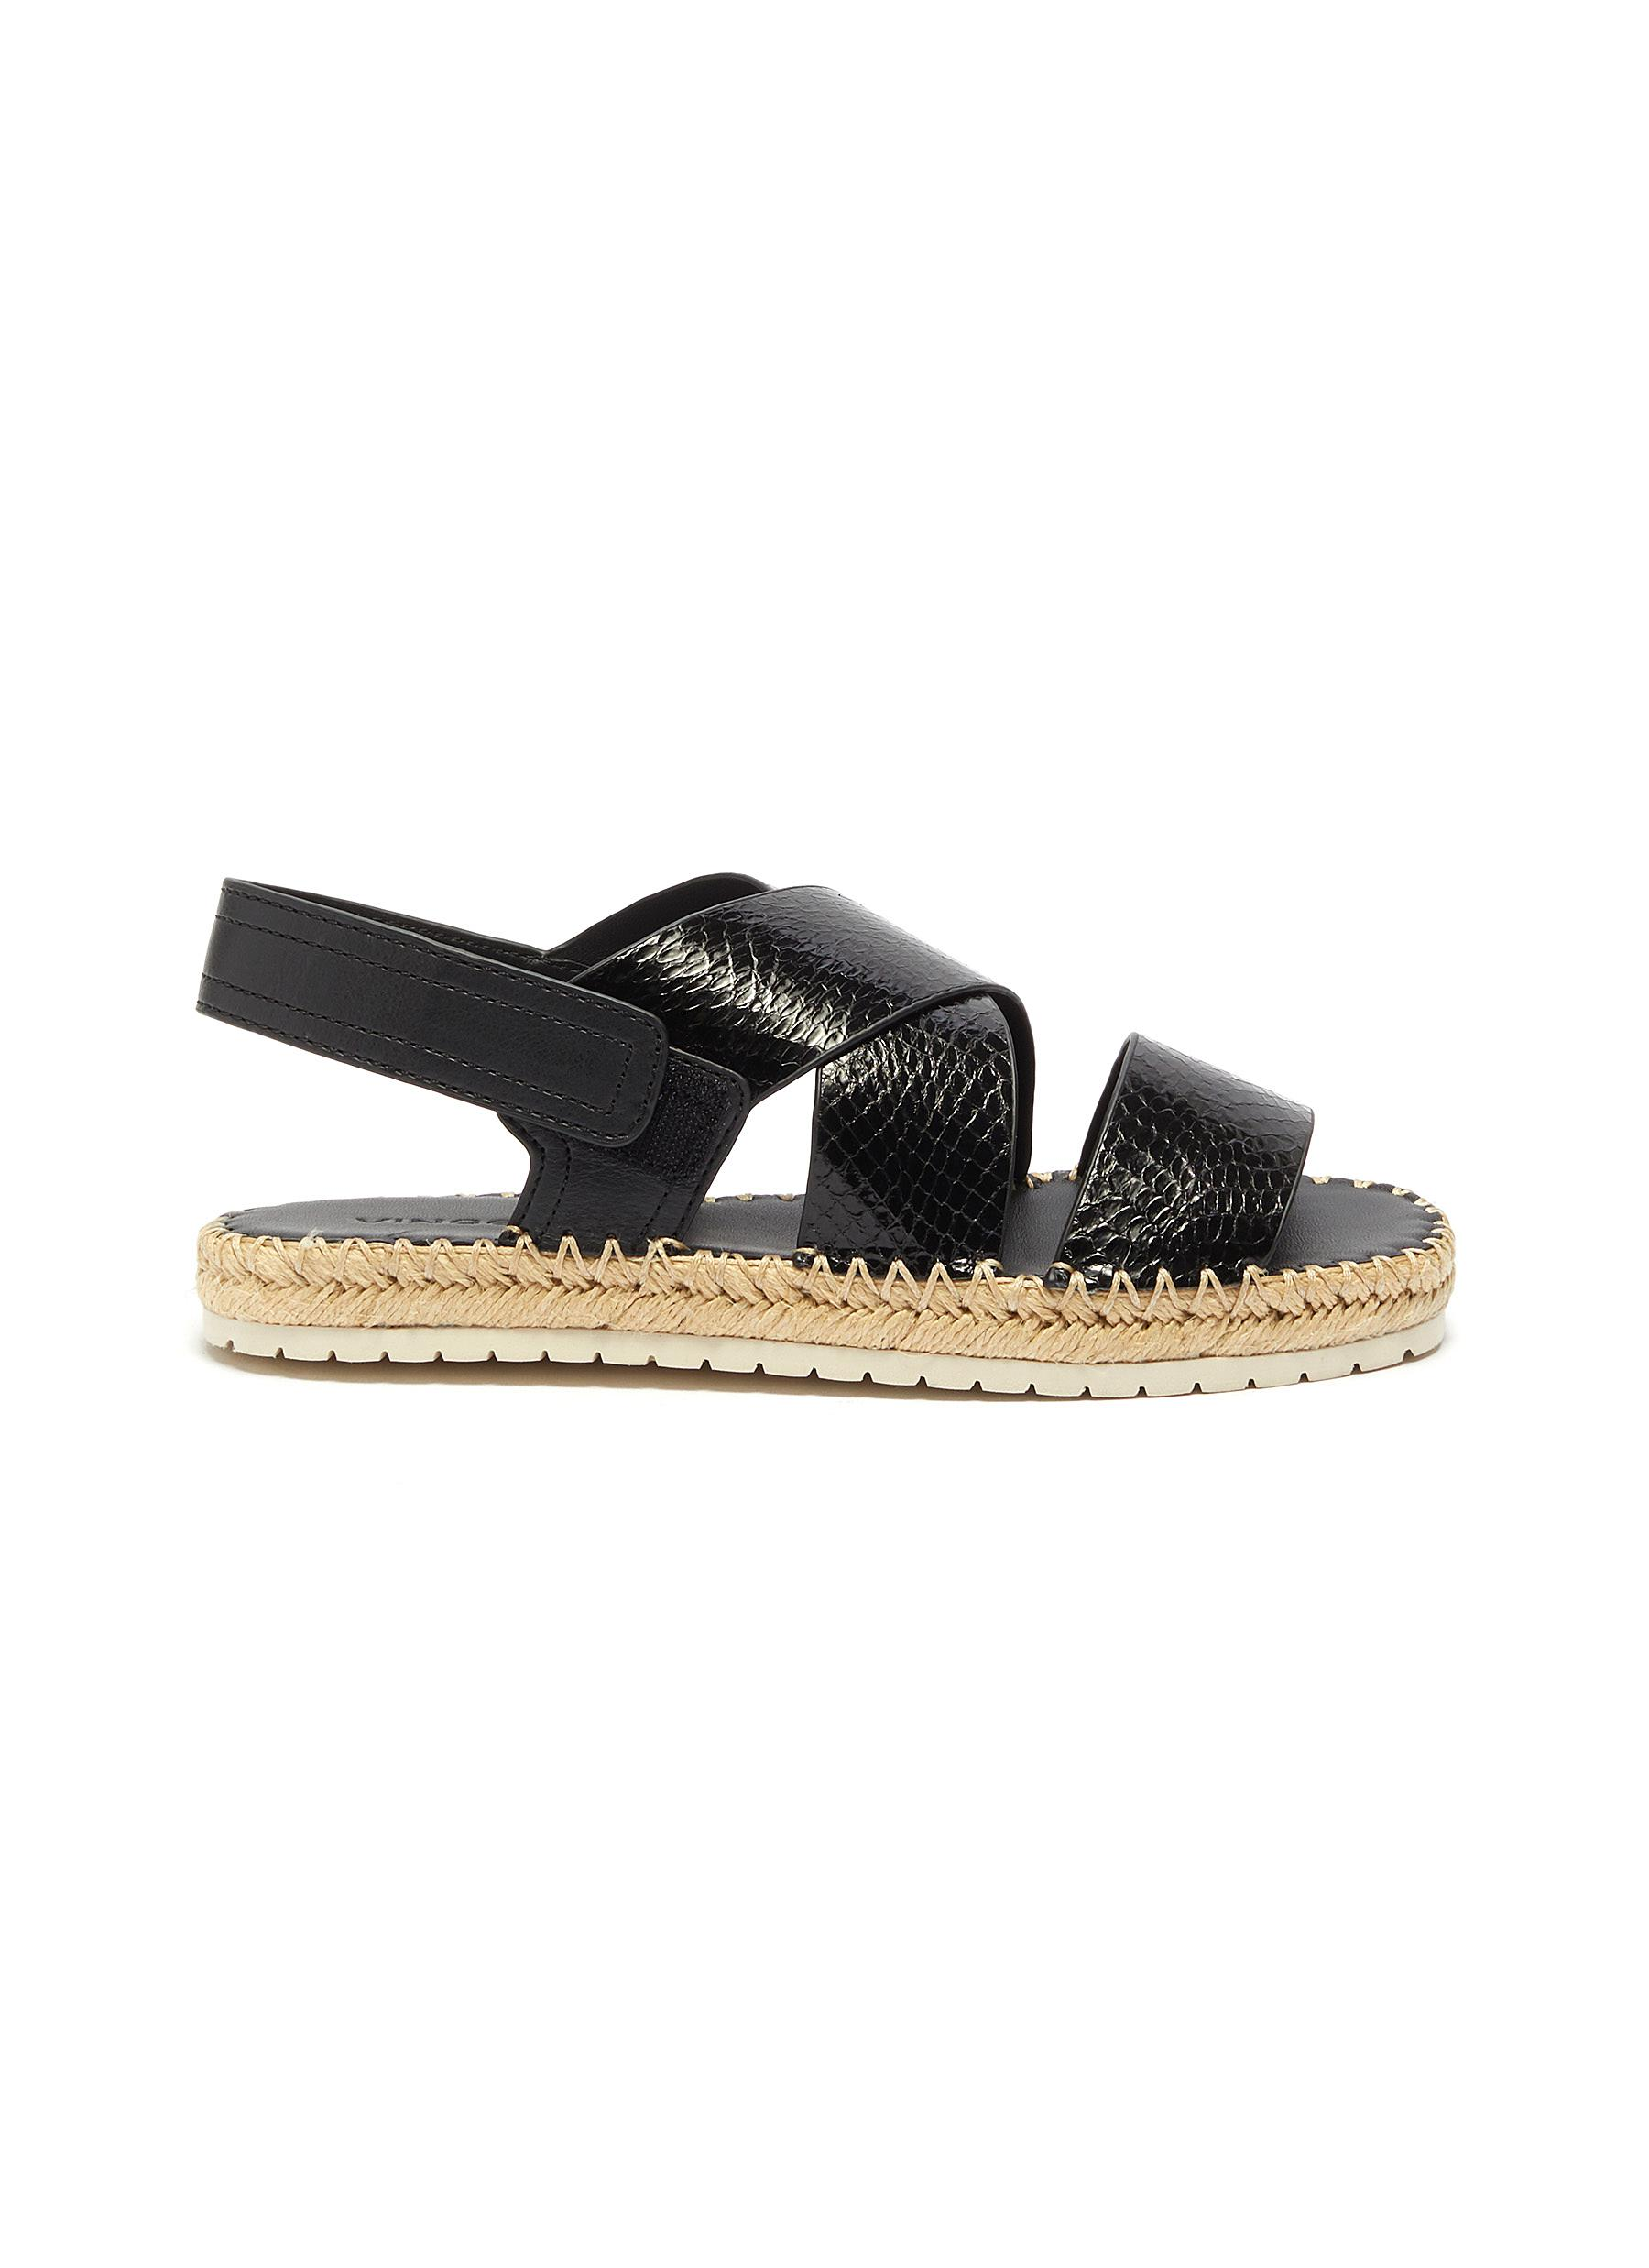 Tension cross strap snake embossed leather espadrille sandals by Vince